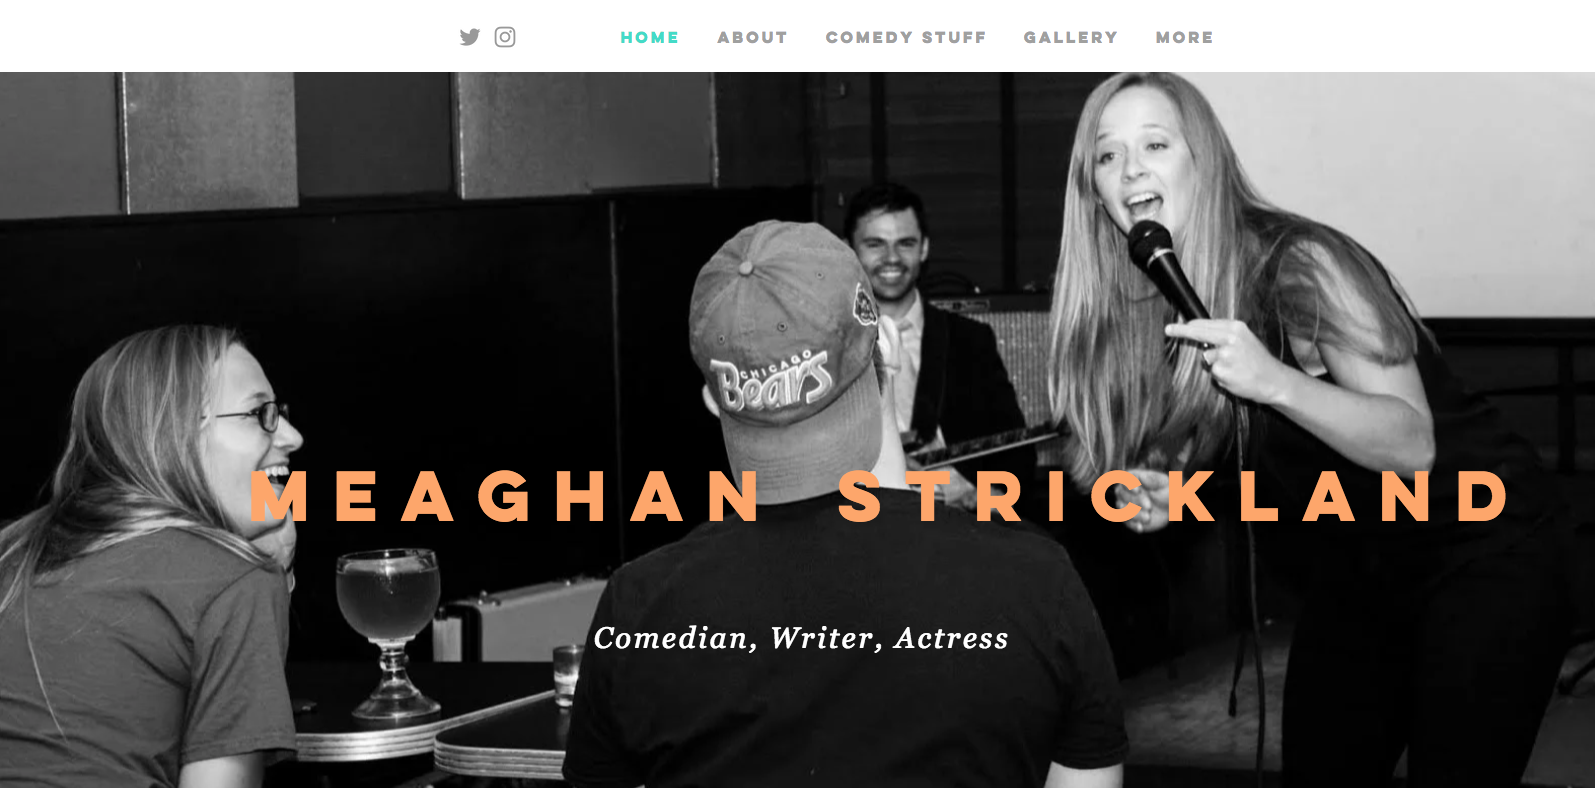 Meaghan Strickland, Comedian